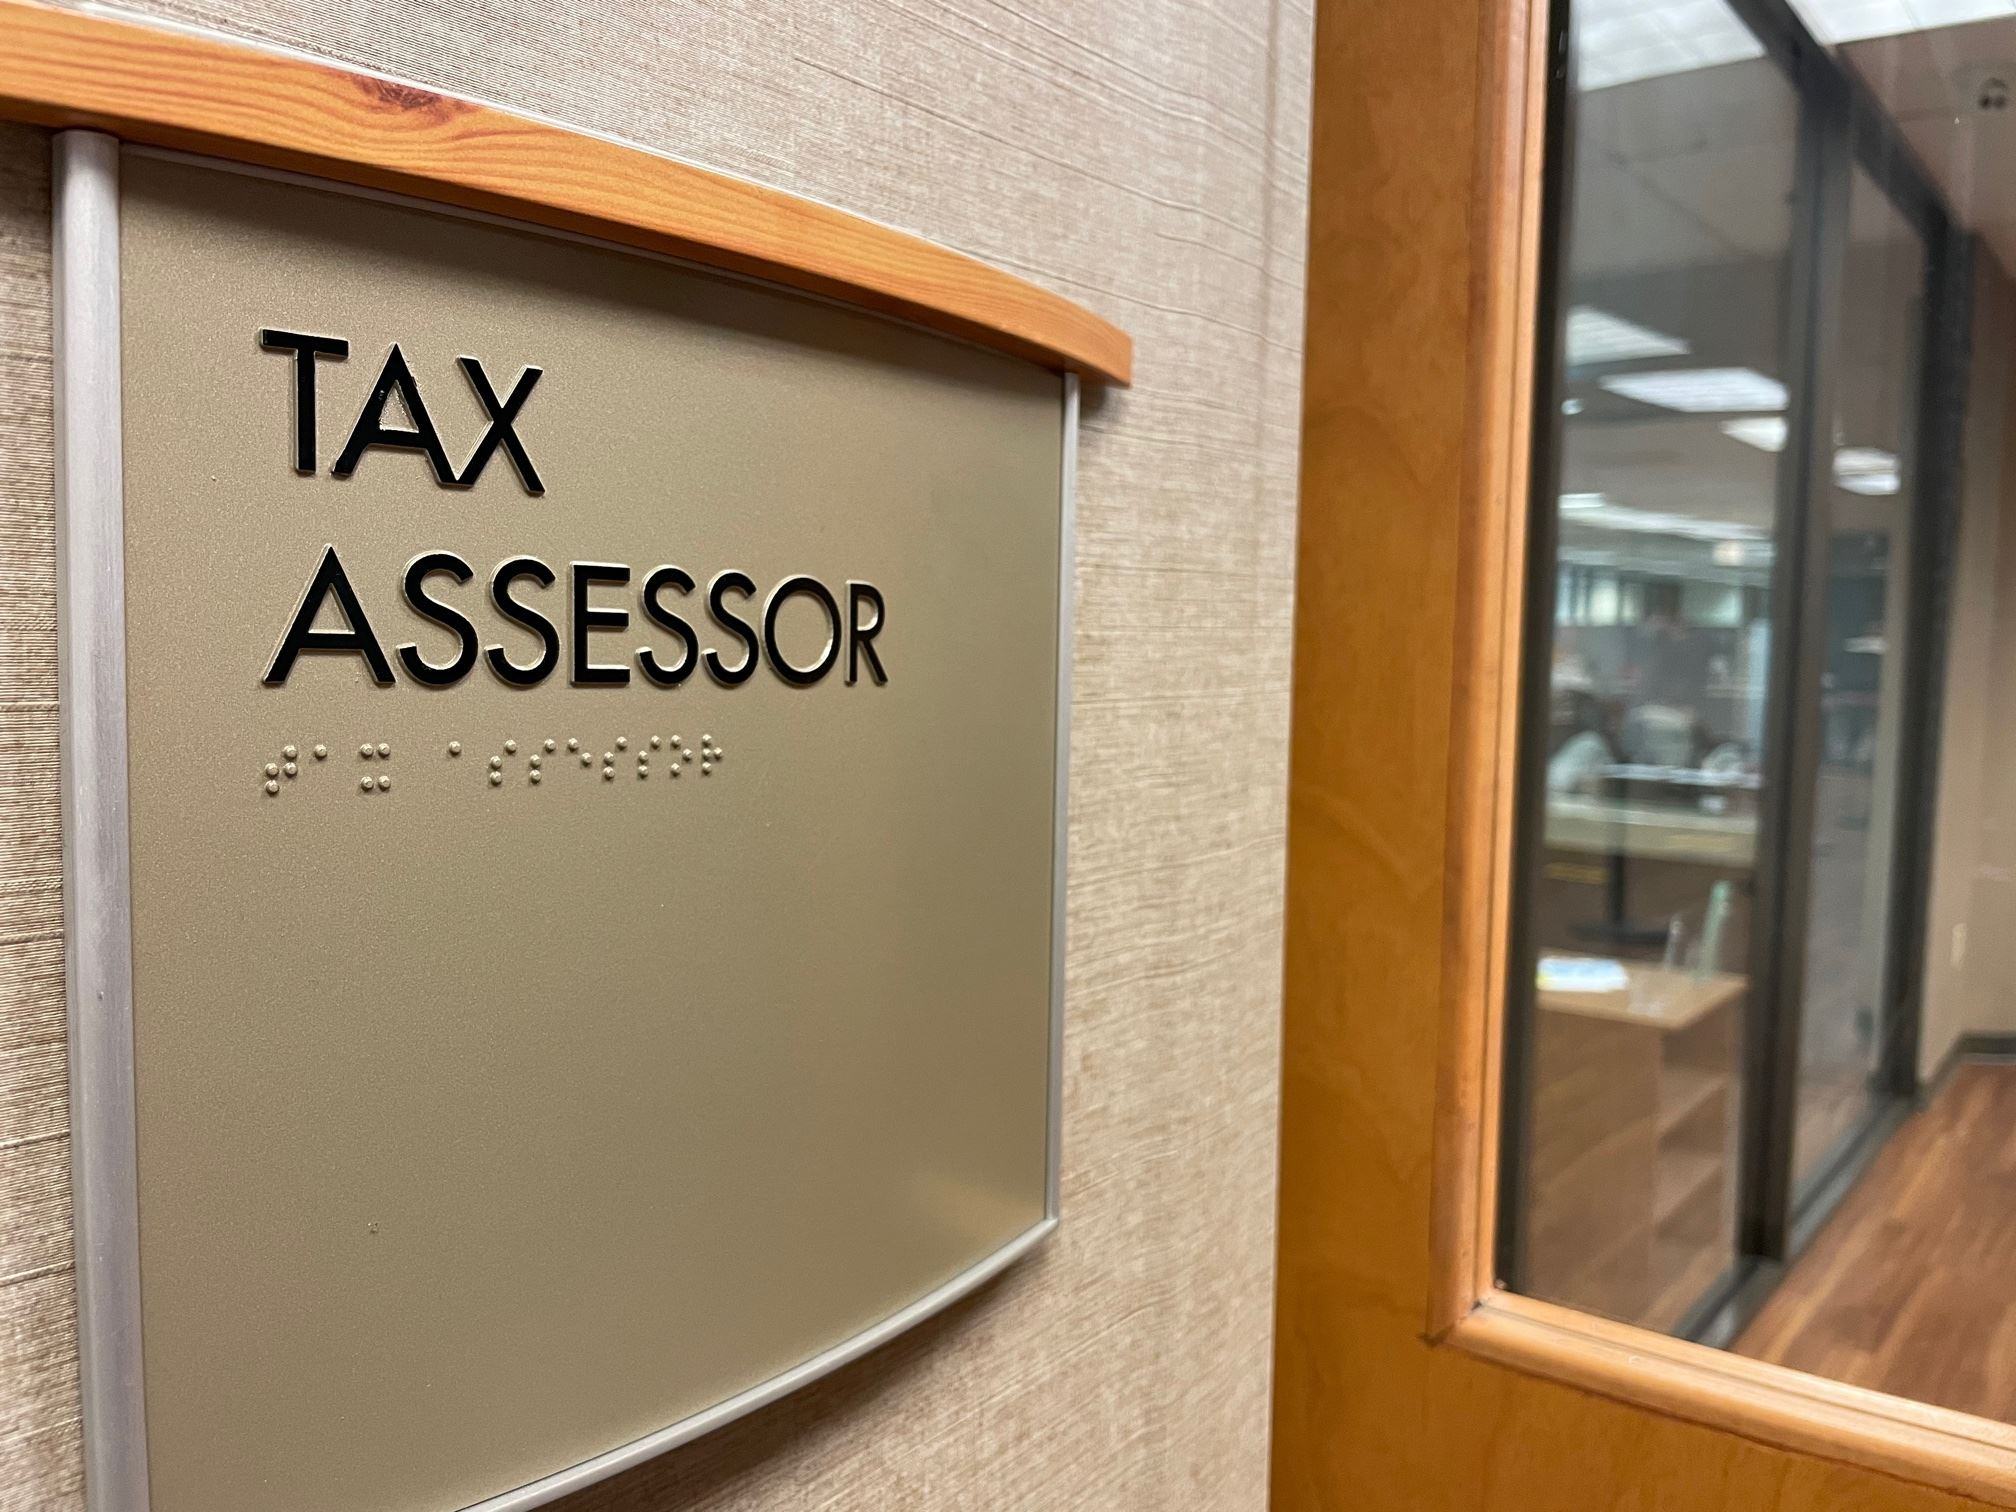 A sign for the Hall County Tax Assessor's Office